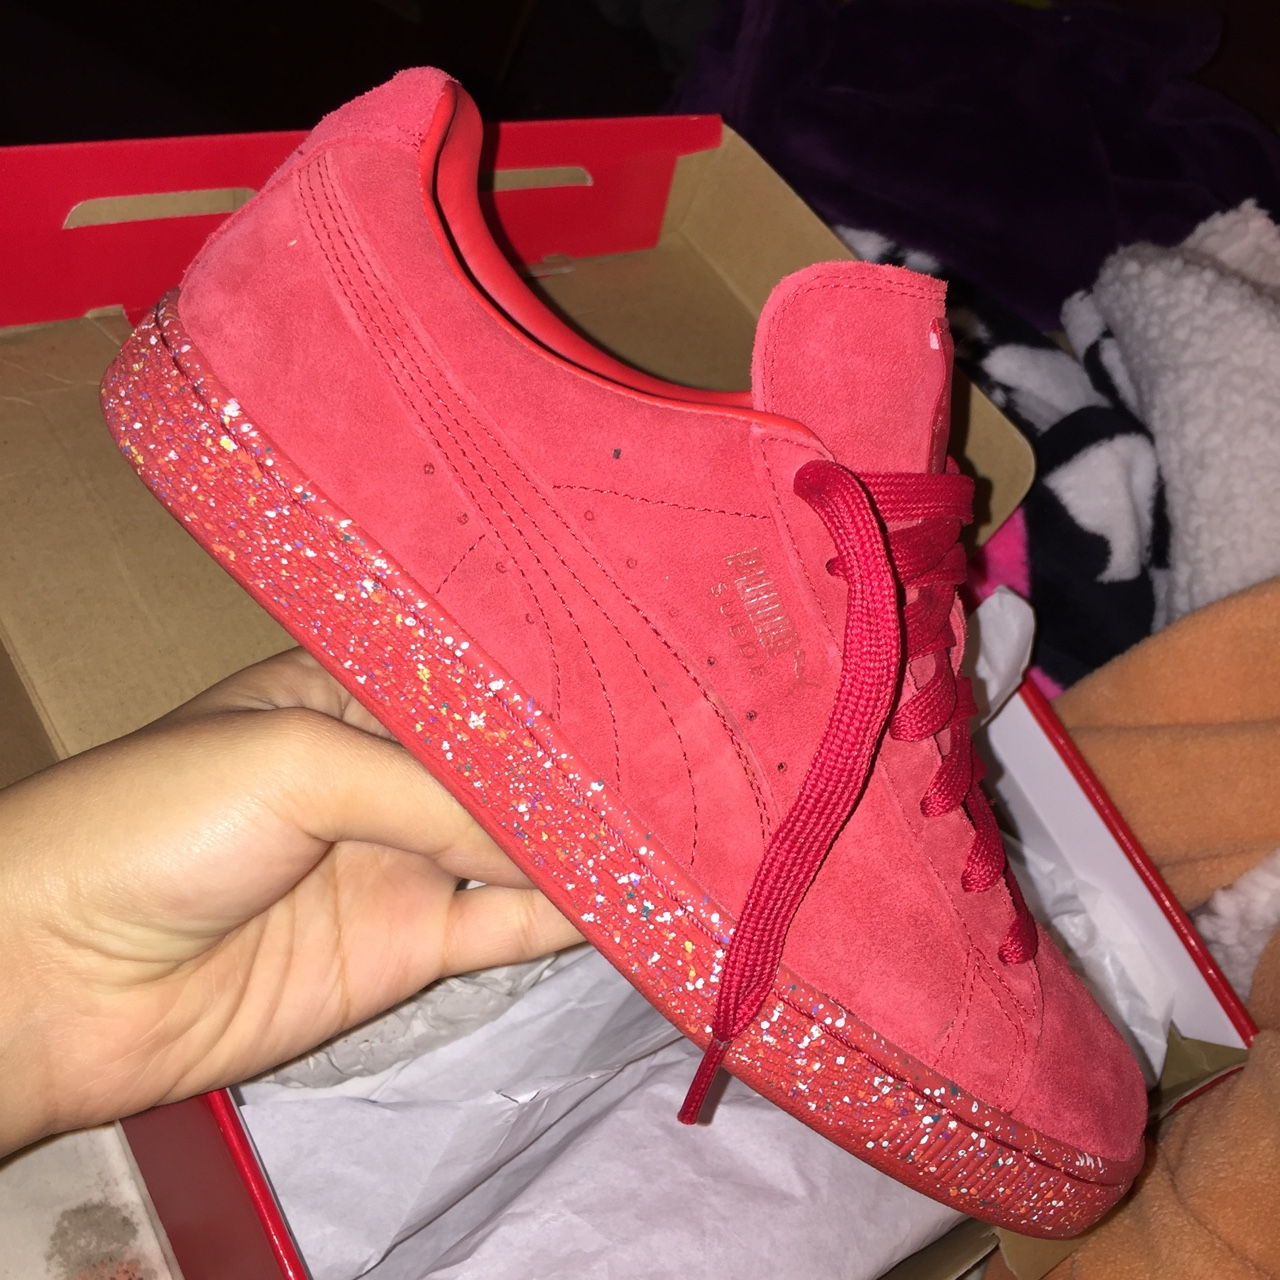 Unisex Puma suede classic in Red with